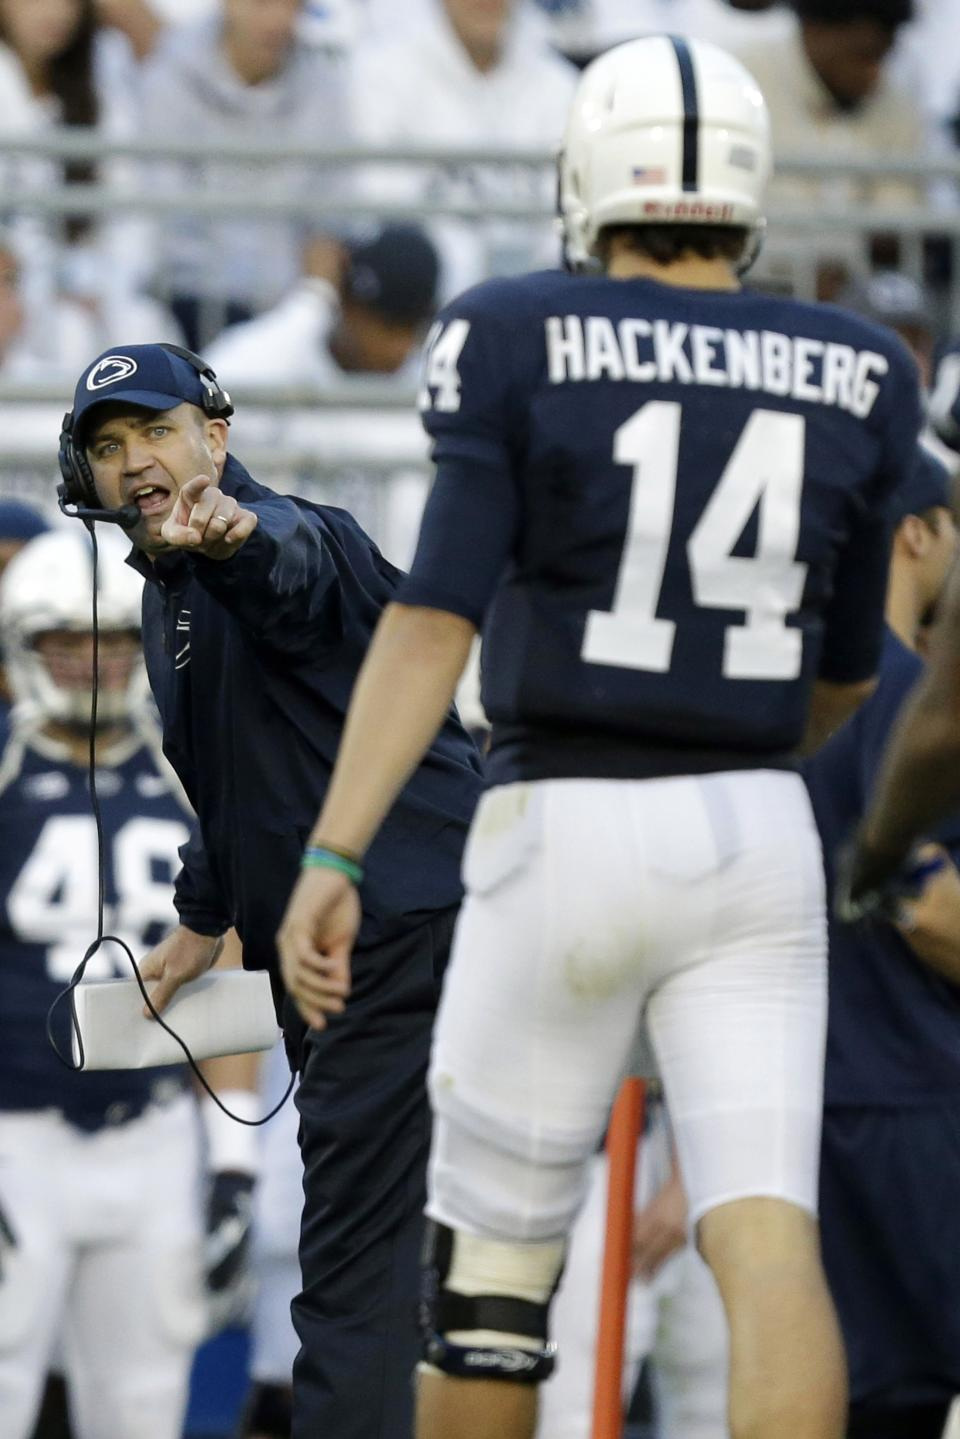 Penn State head coach Bill O' Brien, left, points to Penn State quarterback Christian Hackenberg (14) during a time out in the second quarter of an NCAA college football game against Michigan in State College, Pa., Saturday, Oct. 12, 2013. (AP Photo/Gene J. Puskar)